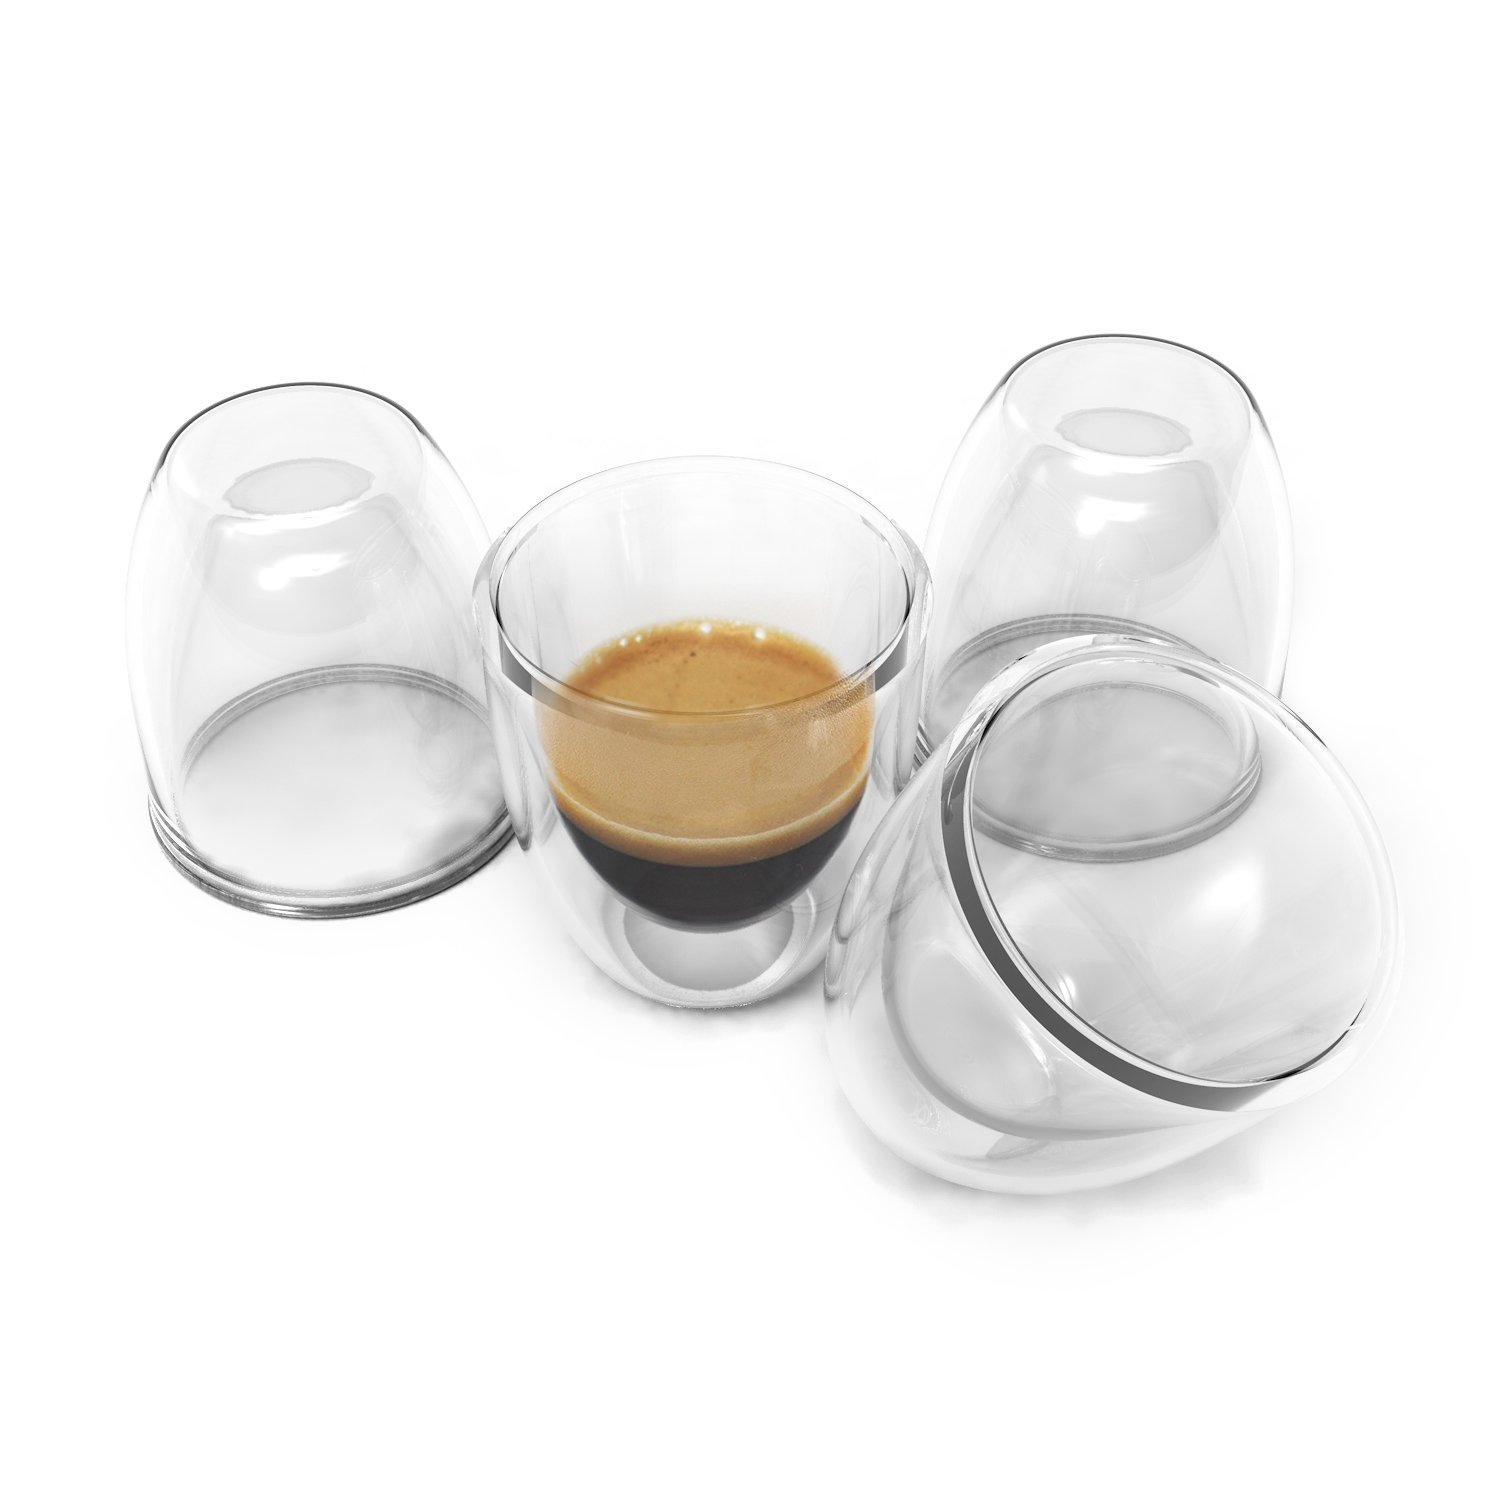 double wall espresso cups stylish double wall espresso cups set insulated coffee shot glasses 26oz of 26